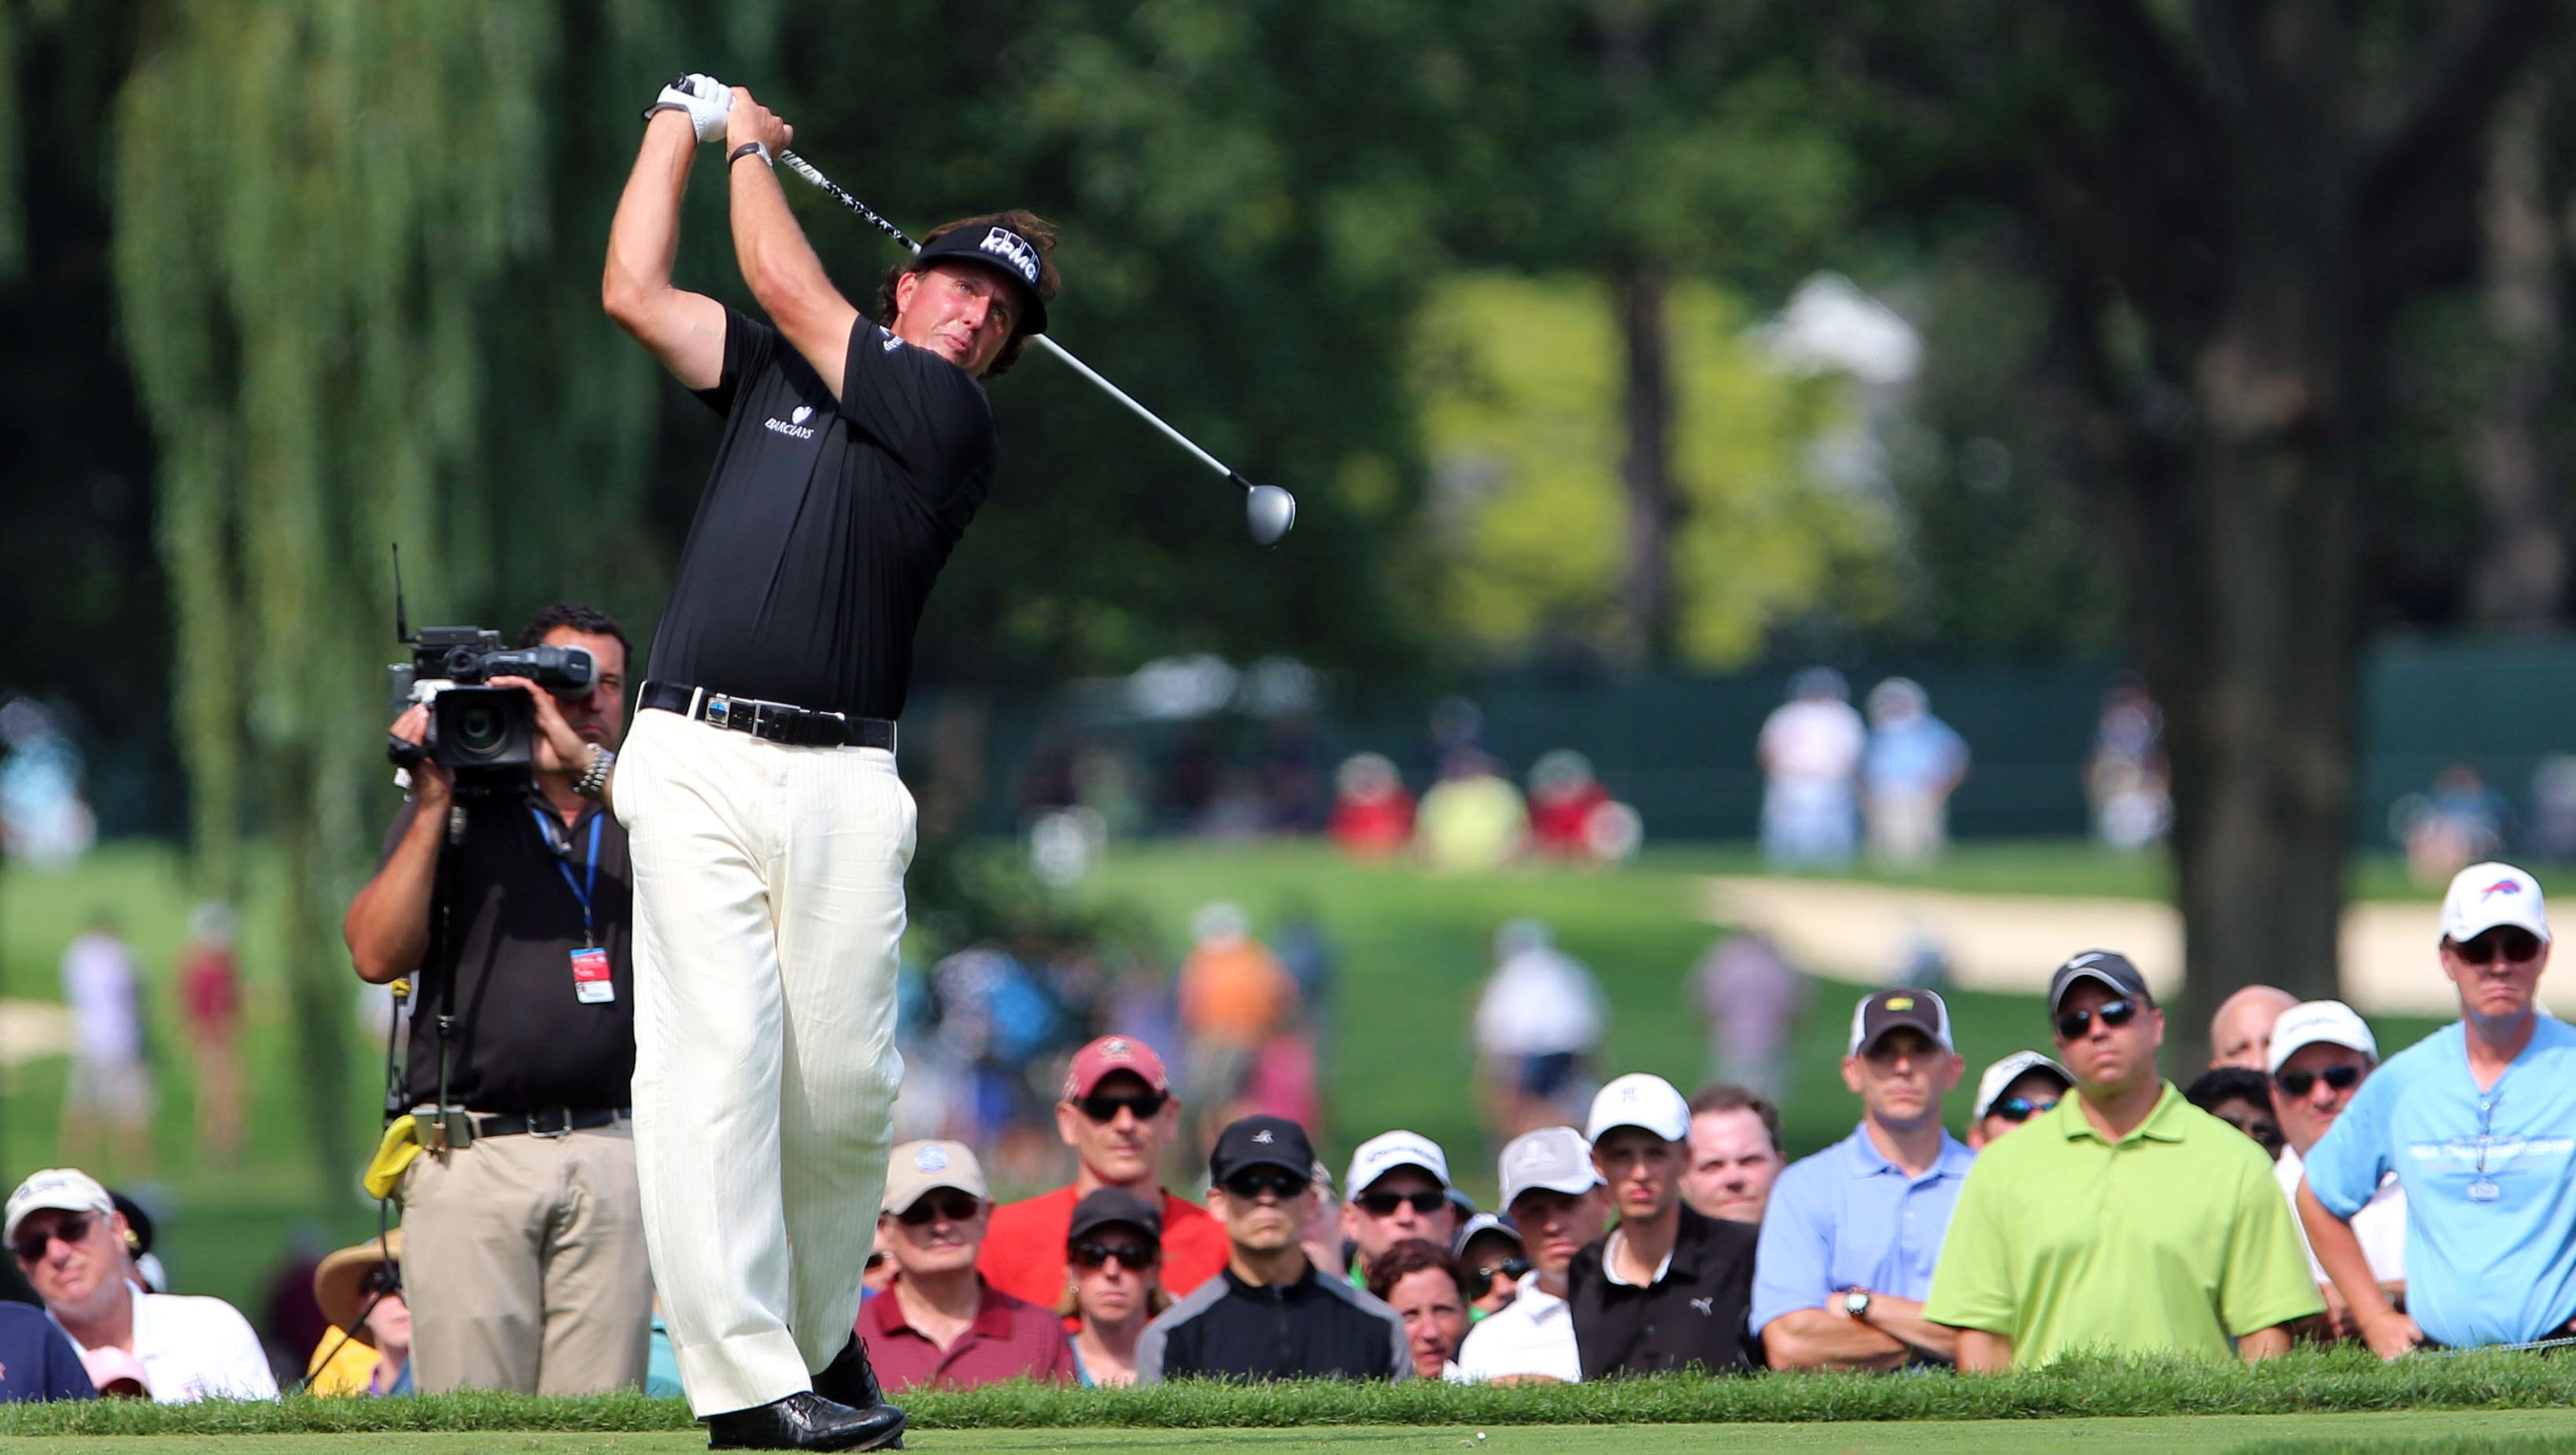 Phil Mickelson tees off on the 9th green during the first round of the 95th PGA Championship at Oak Hill Country Club.